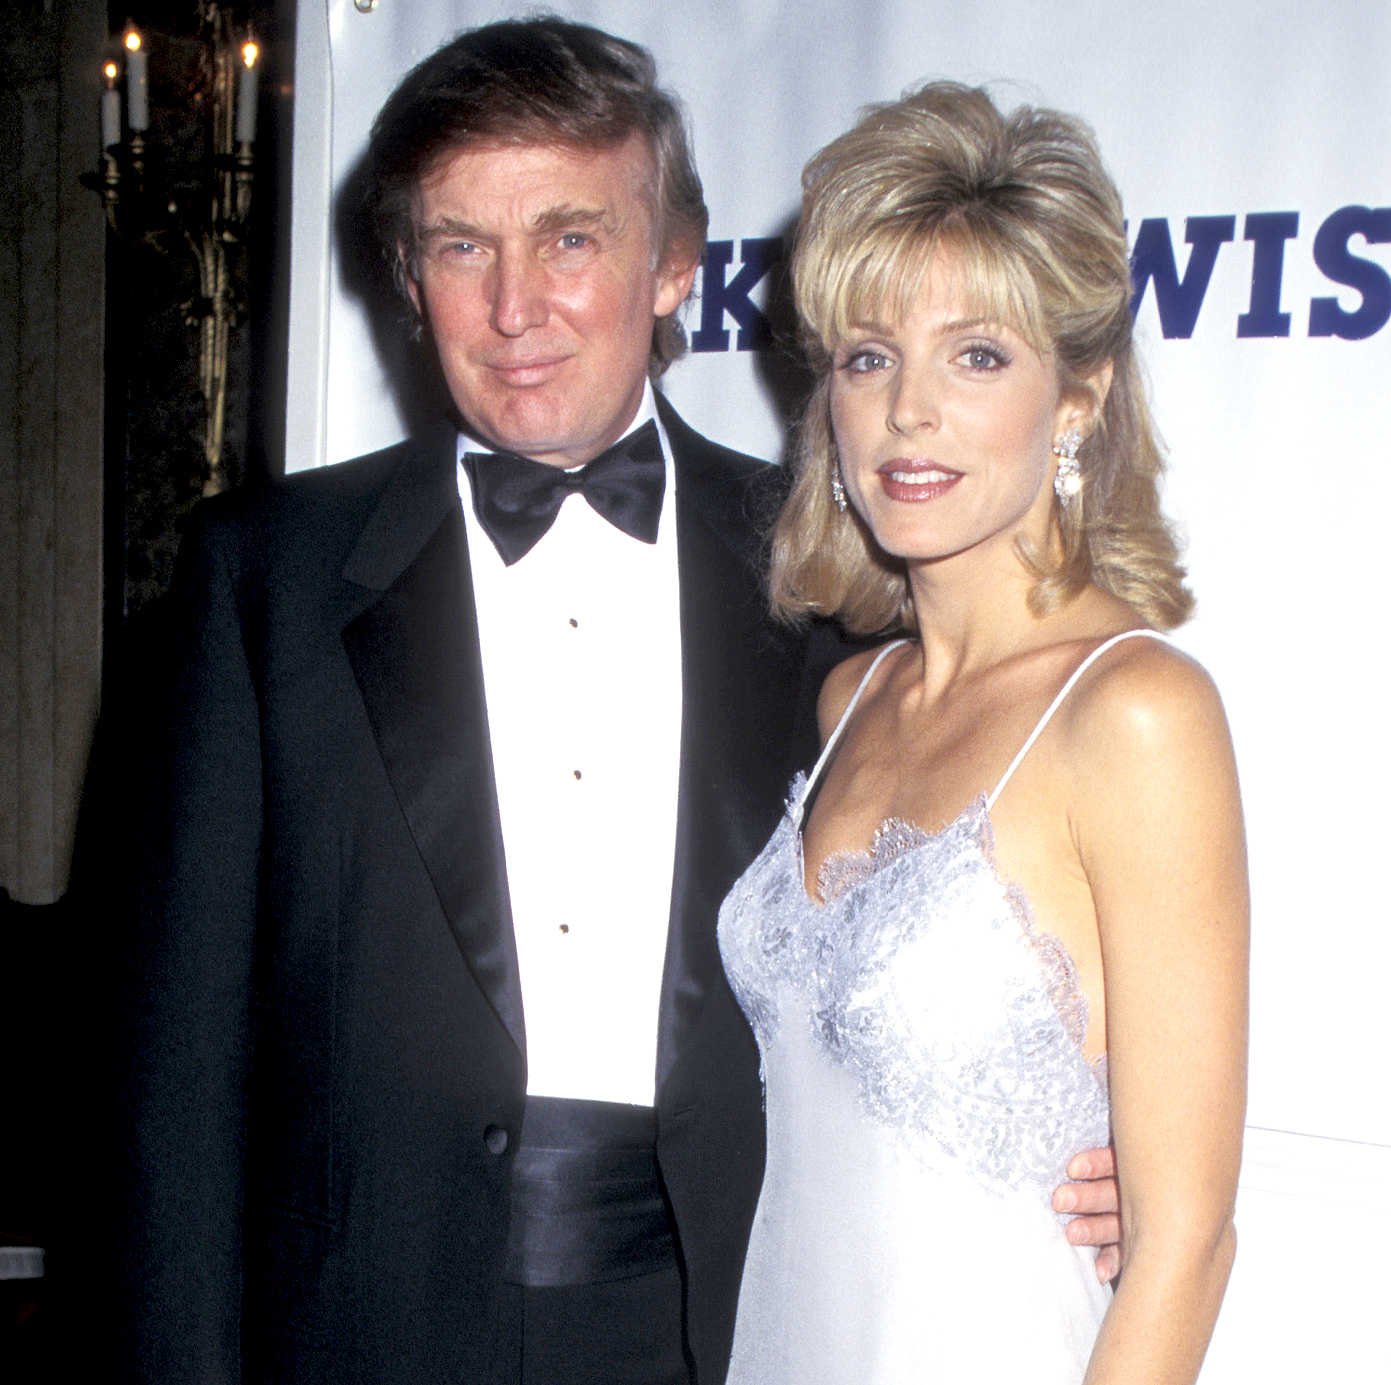 Donald Trump and Marla Maples during the Dinner Dance Benefit for the Make A Wish Foundation at the Plaza Hotel in New York City, in 1995.